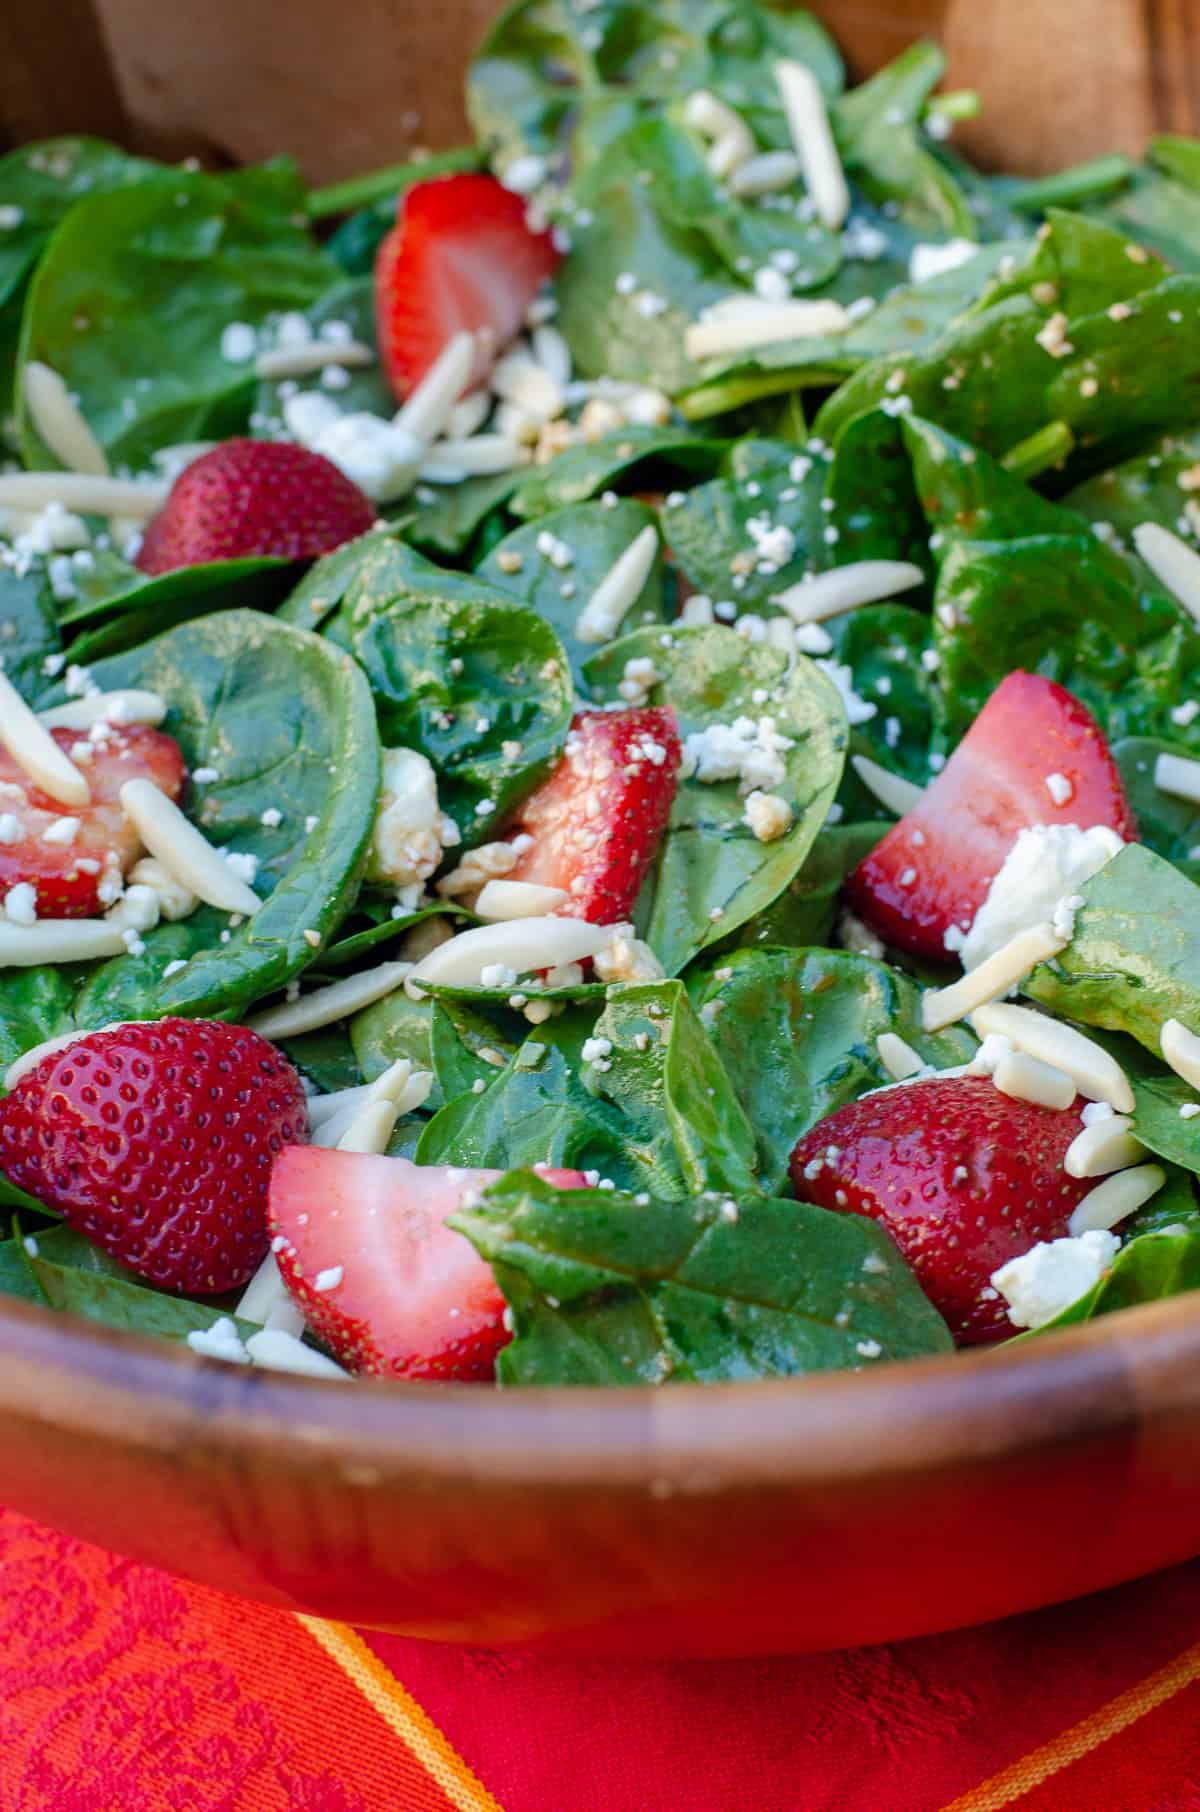 A close up of Strawberry Spinach Salad in a wooden salad bowl on a red cloth.